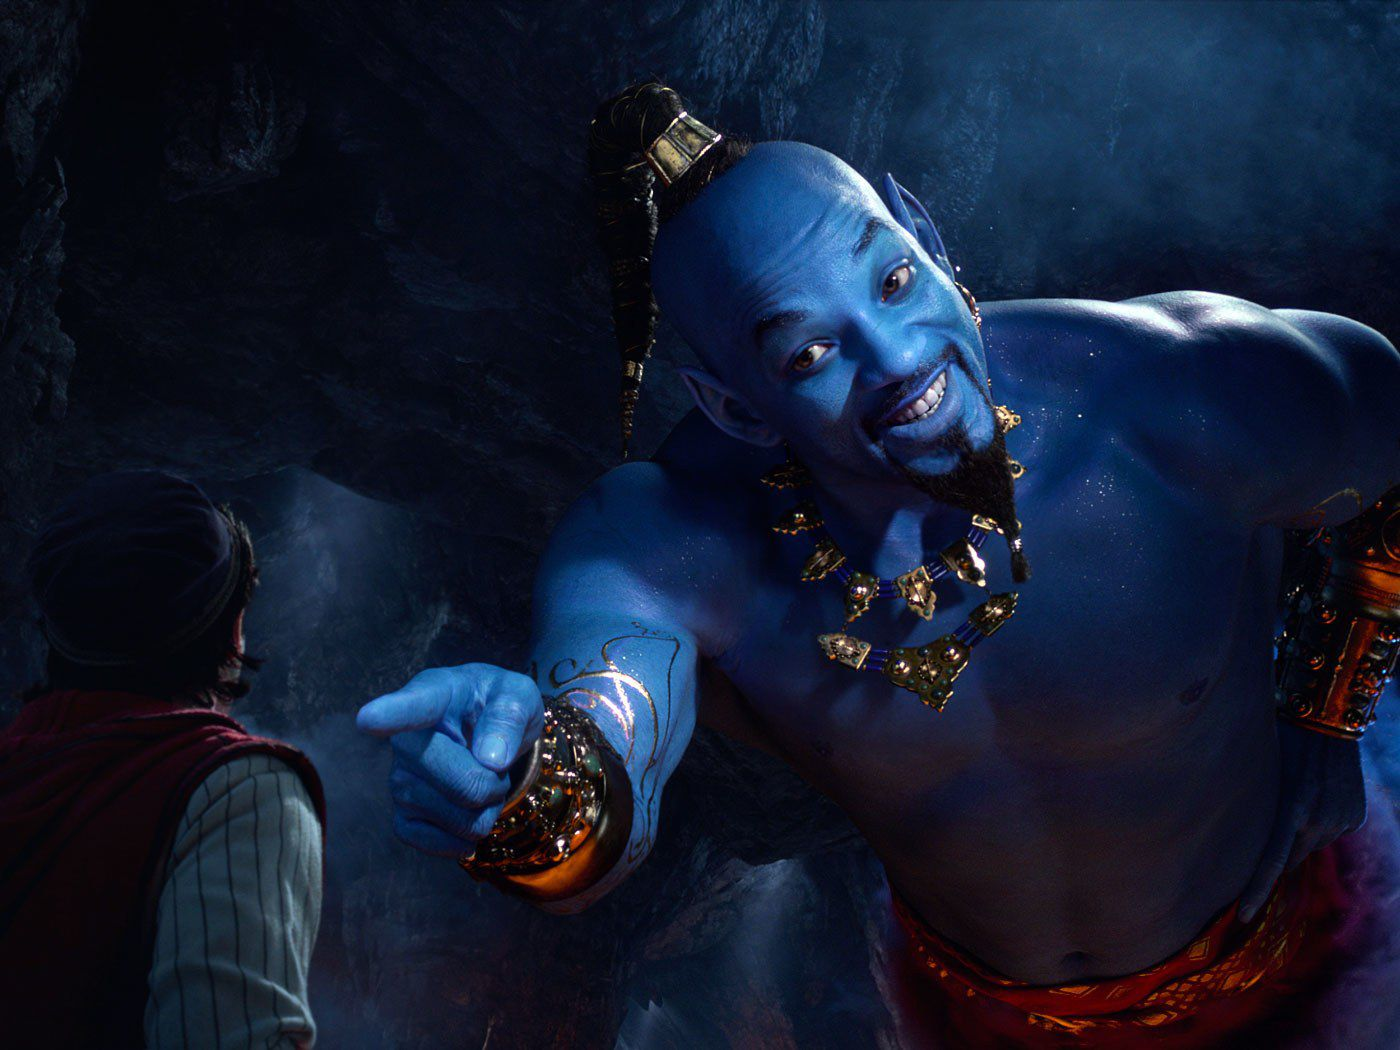 Aladdin (live action 2019) - Special Fantasy Fable with Will Smith as the Genie